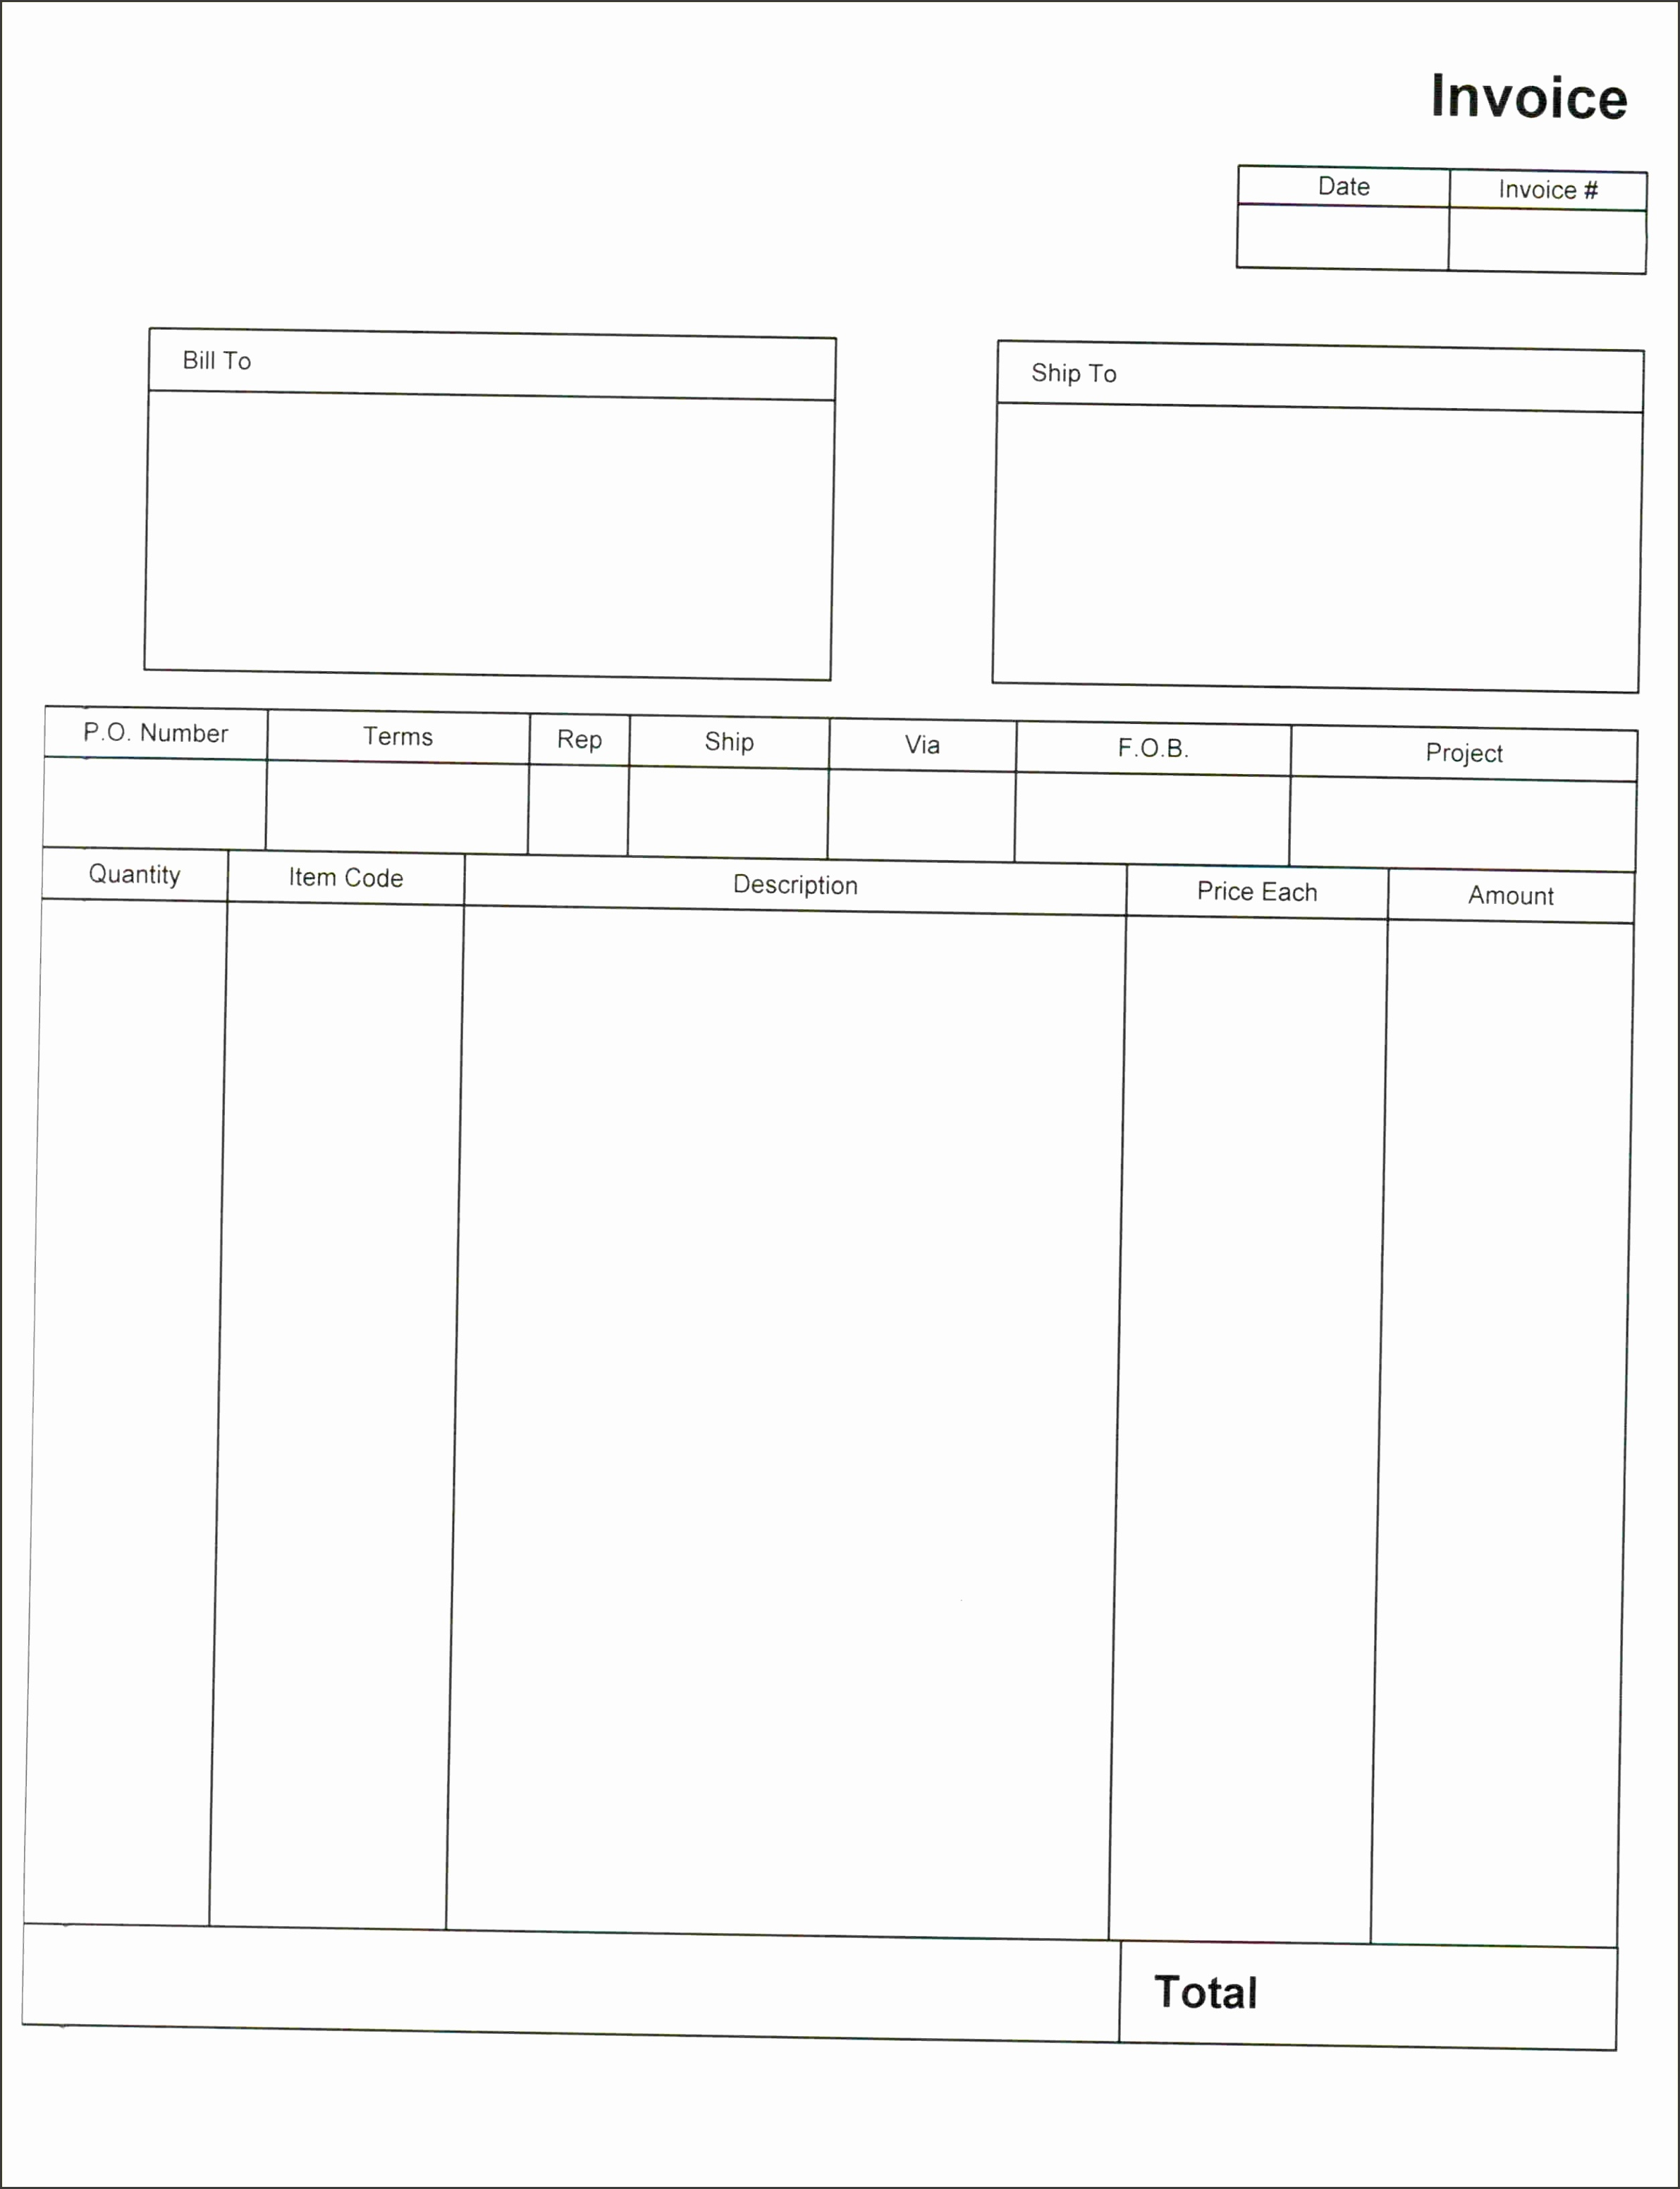 Blank Invoice Template Download Invoice Template Trakore Template Design Blank Invoice Template Pdf Authorization Letters Regarding